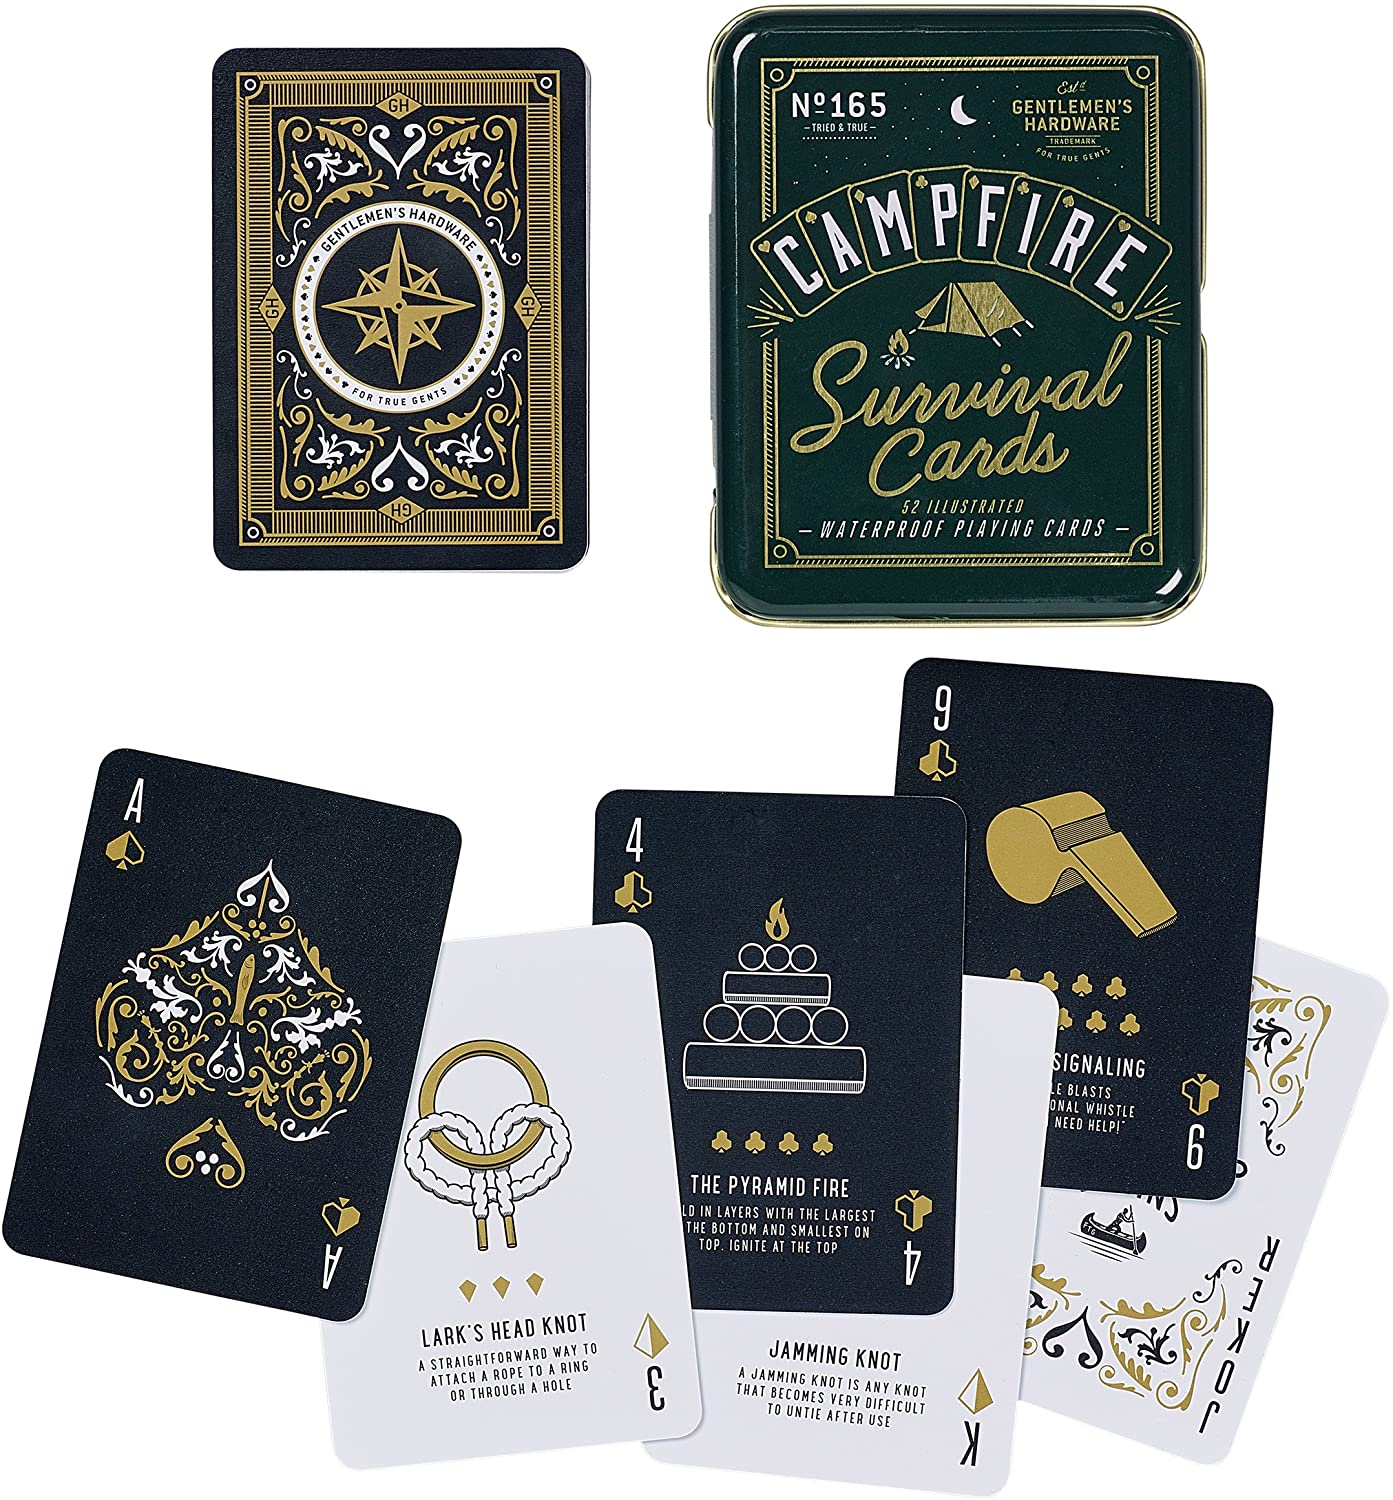 Gentlemens Hardware Campfire Survival Travel Playing Cards Set